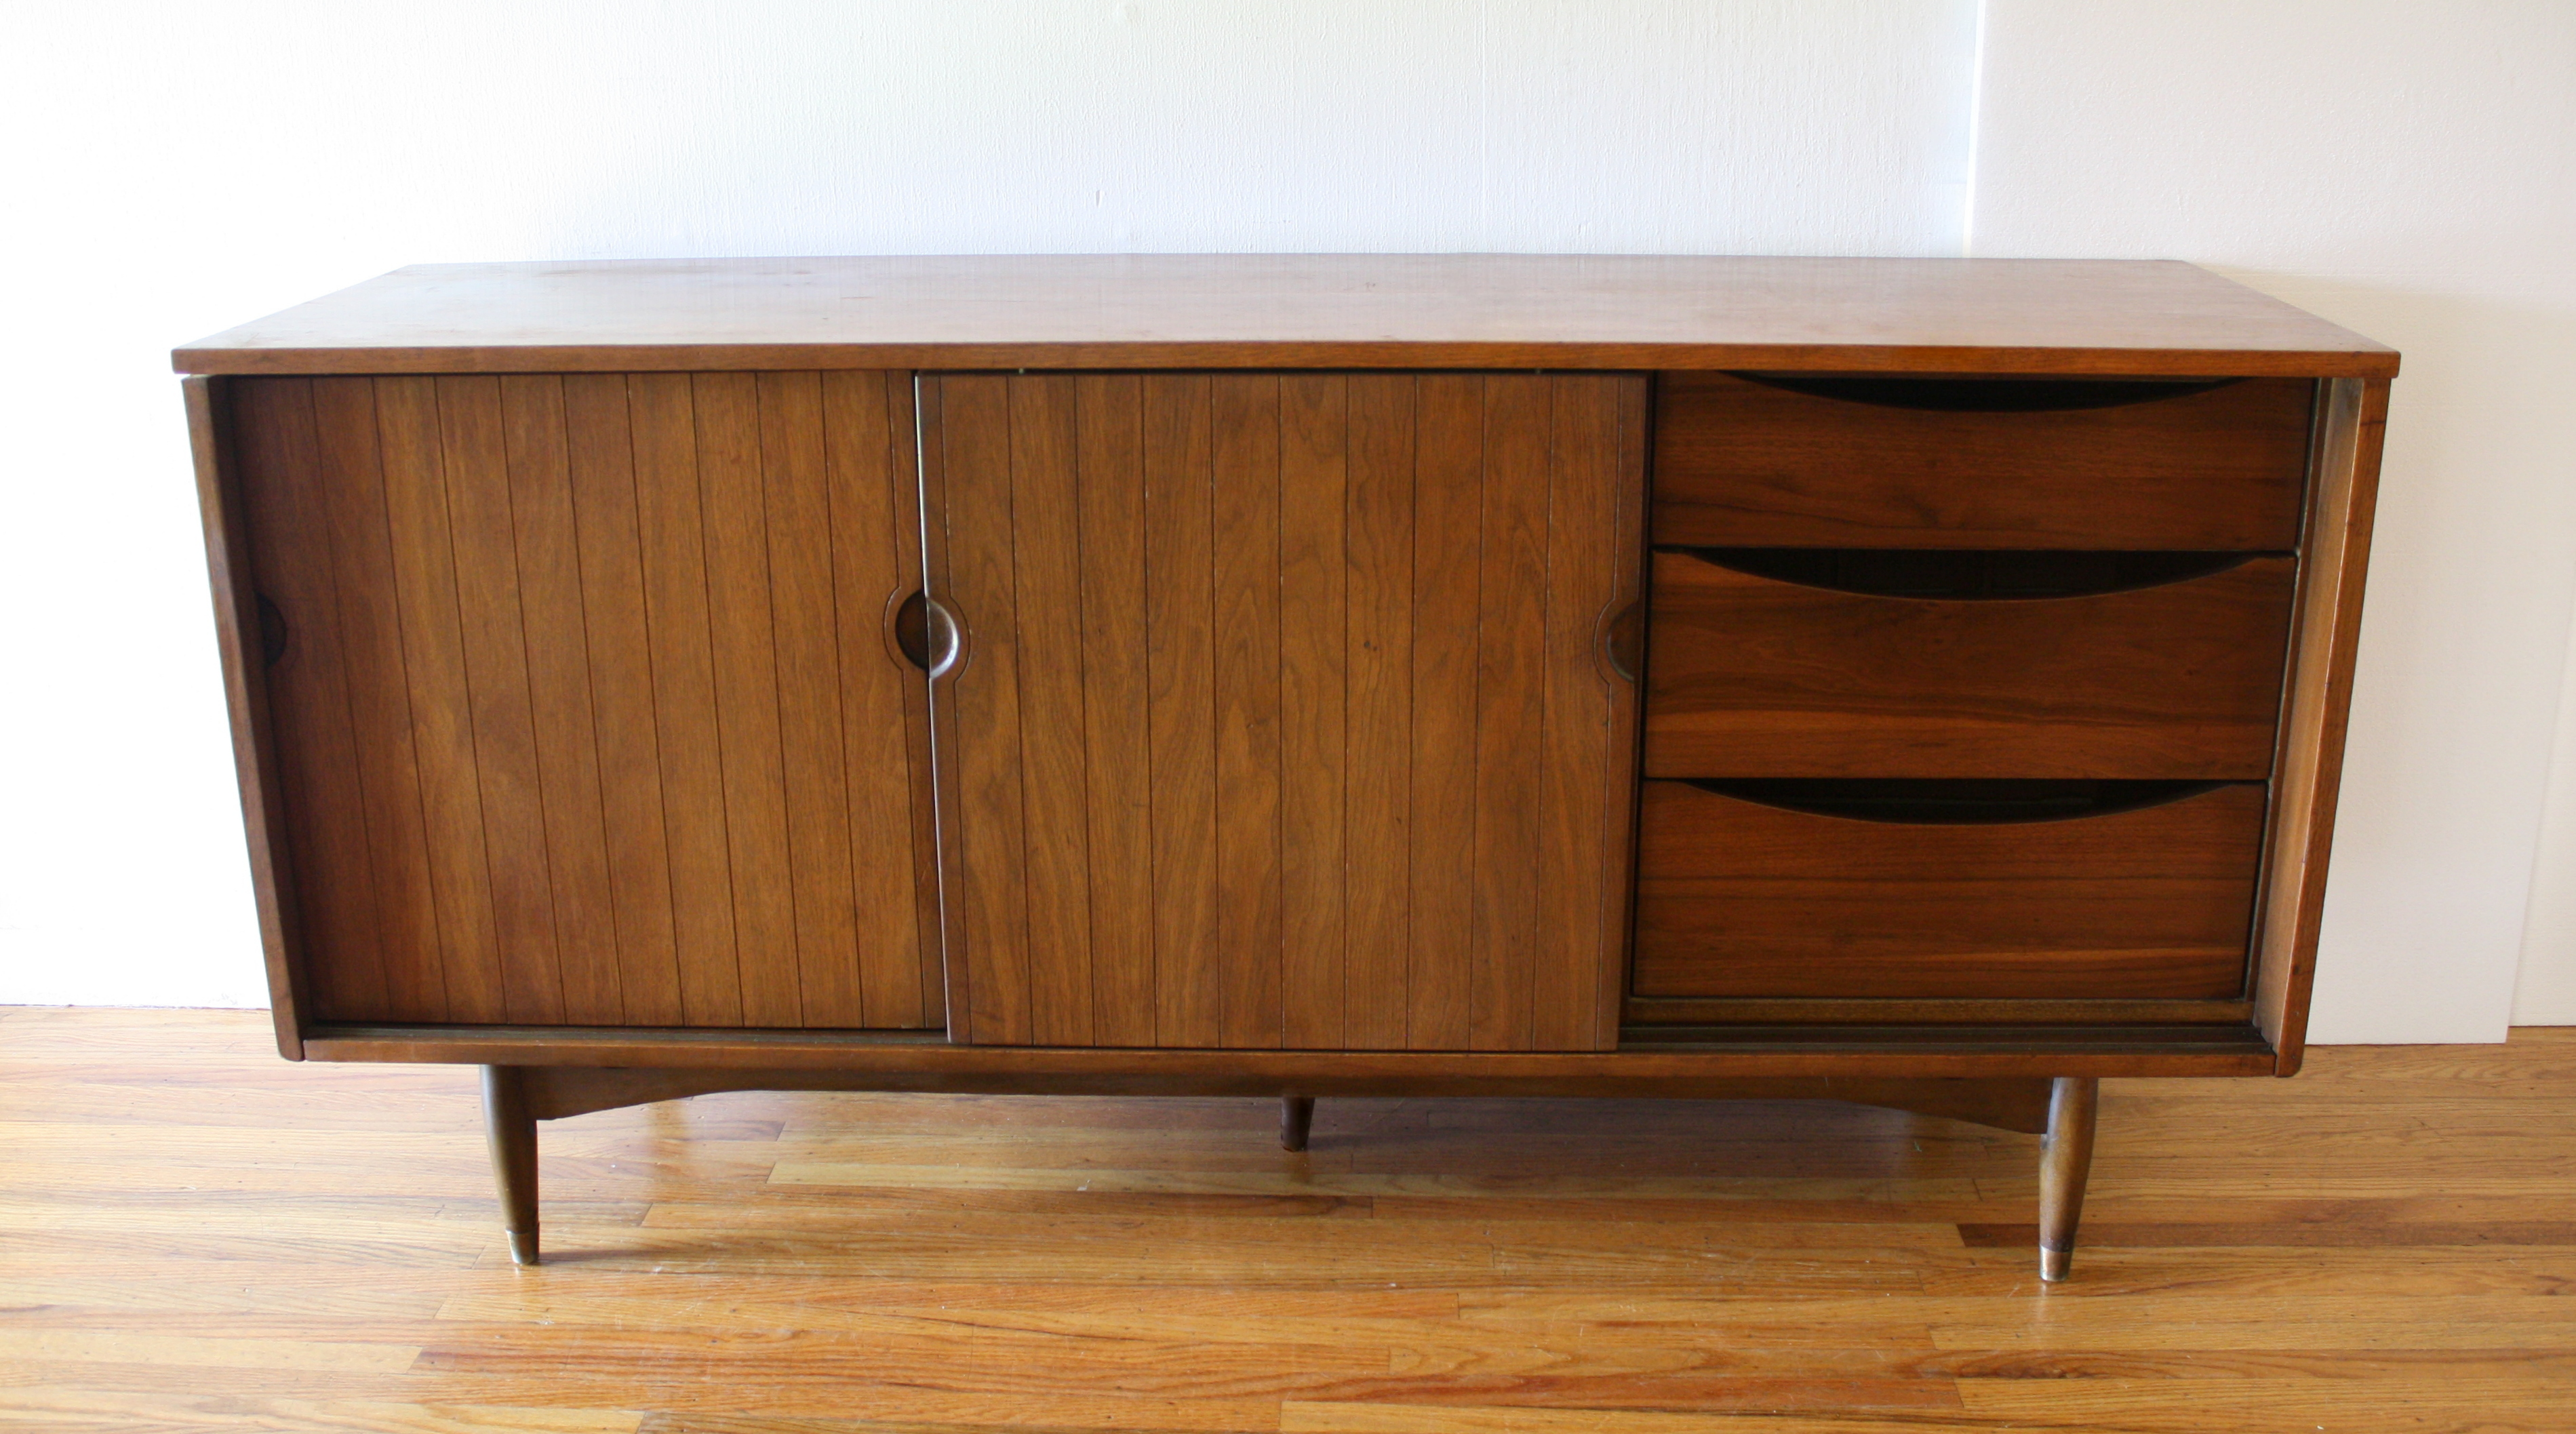 mcm-credenza-with-sliding-door-cabinets-1